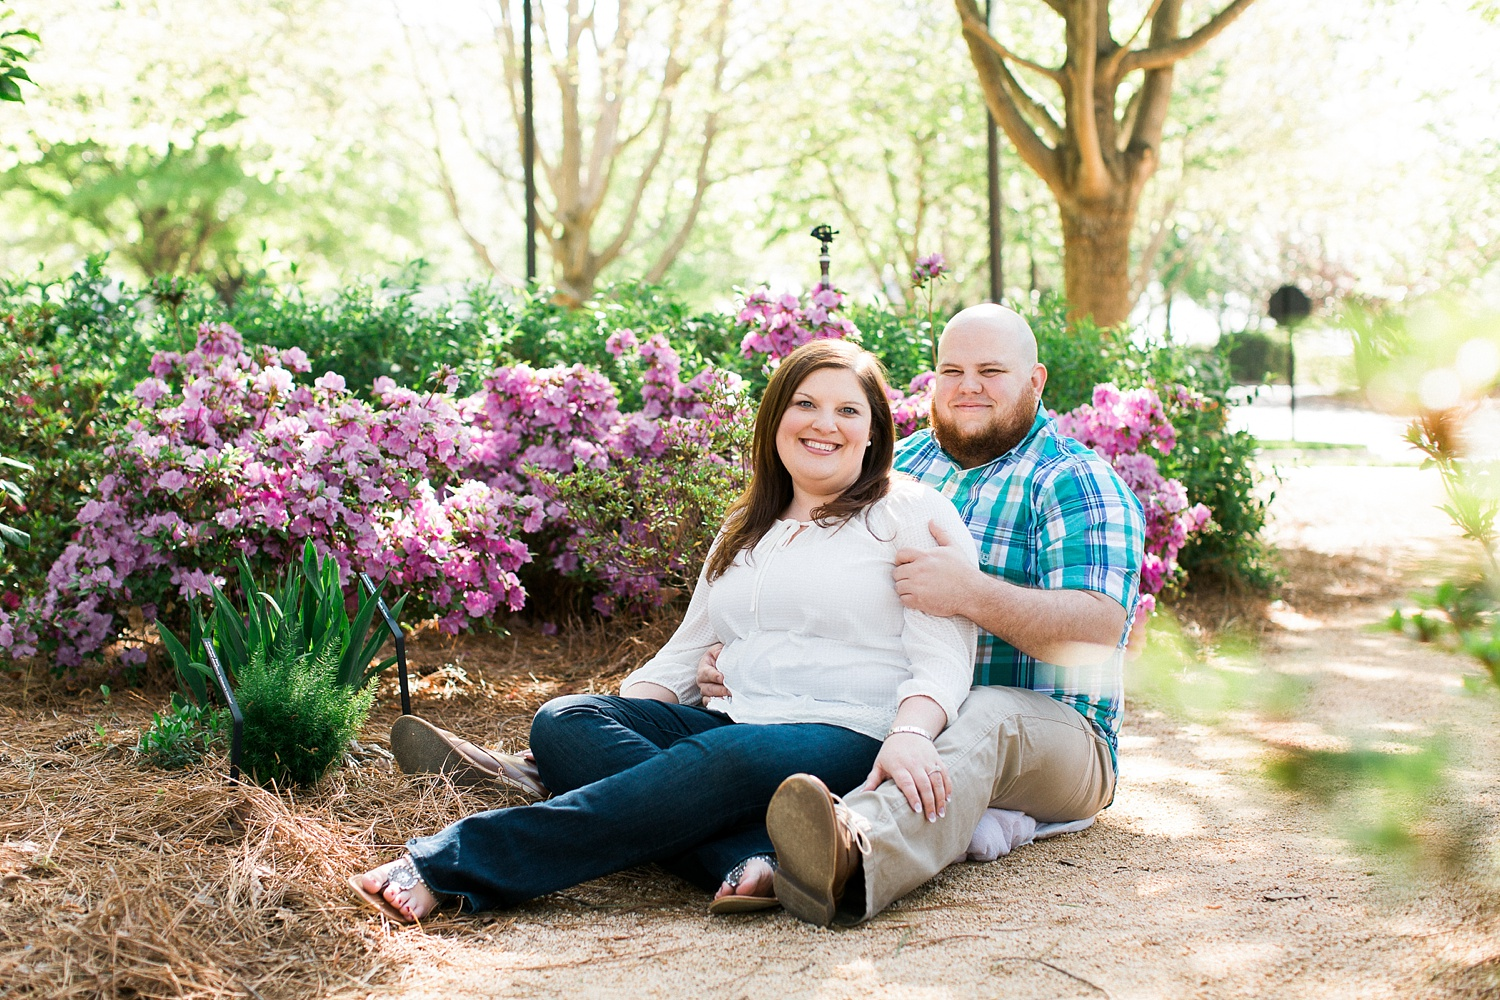 Engagement session at the WRAL Azalea garden in downtown Raleigh